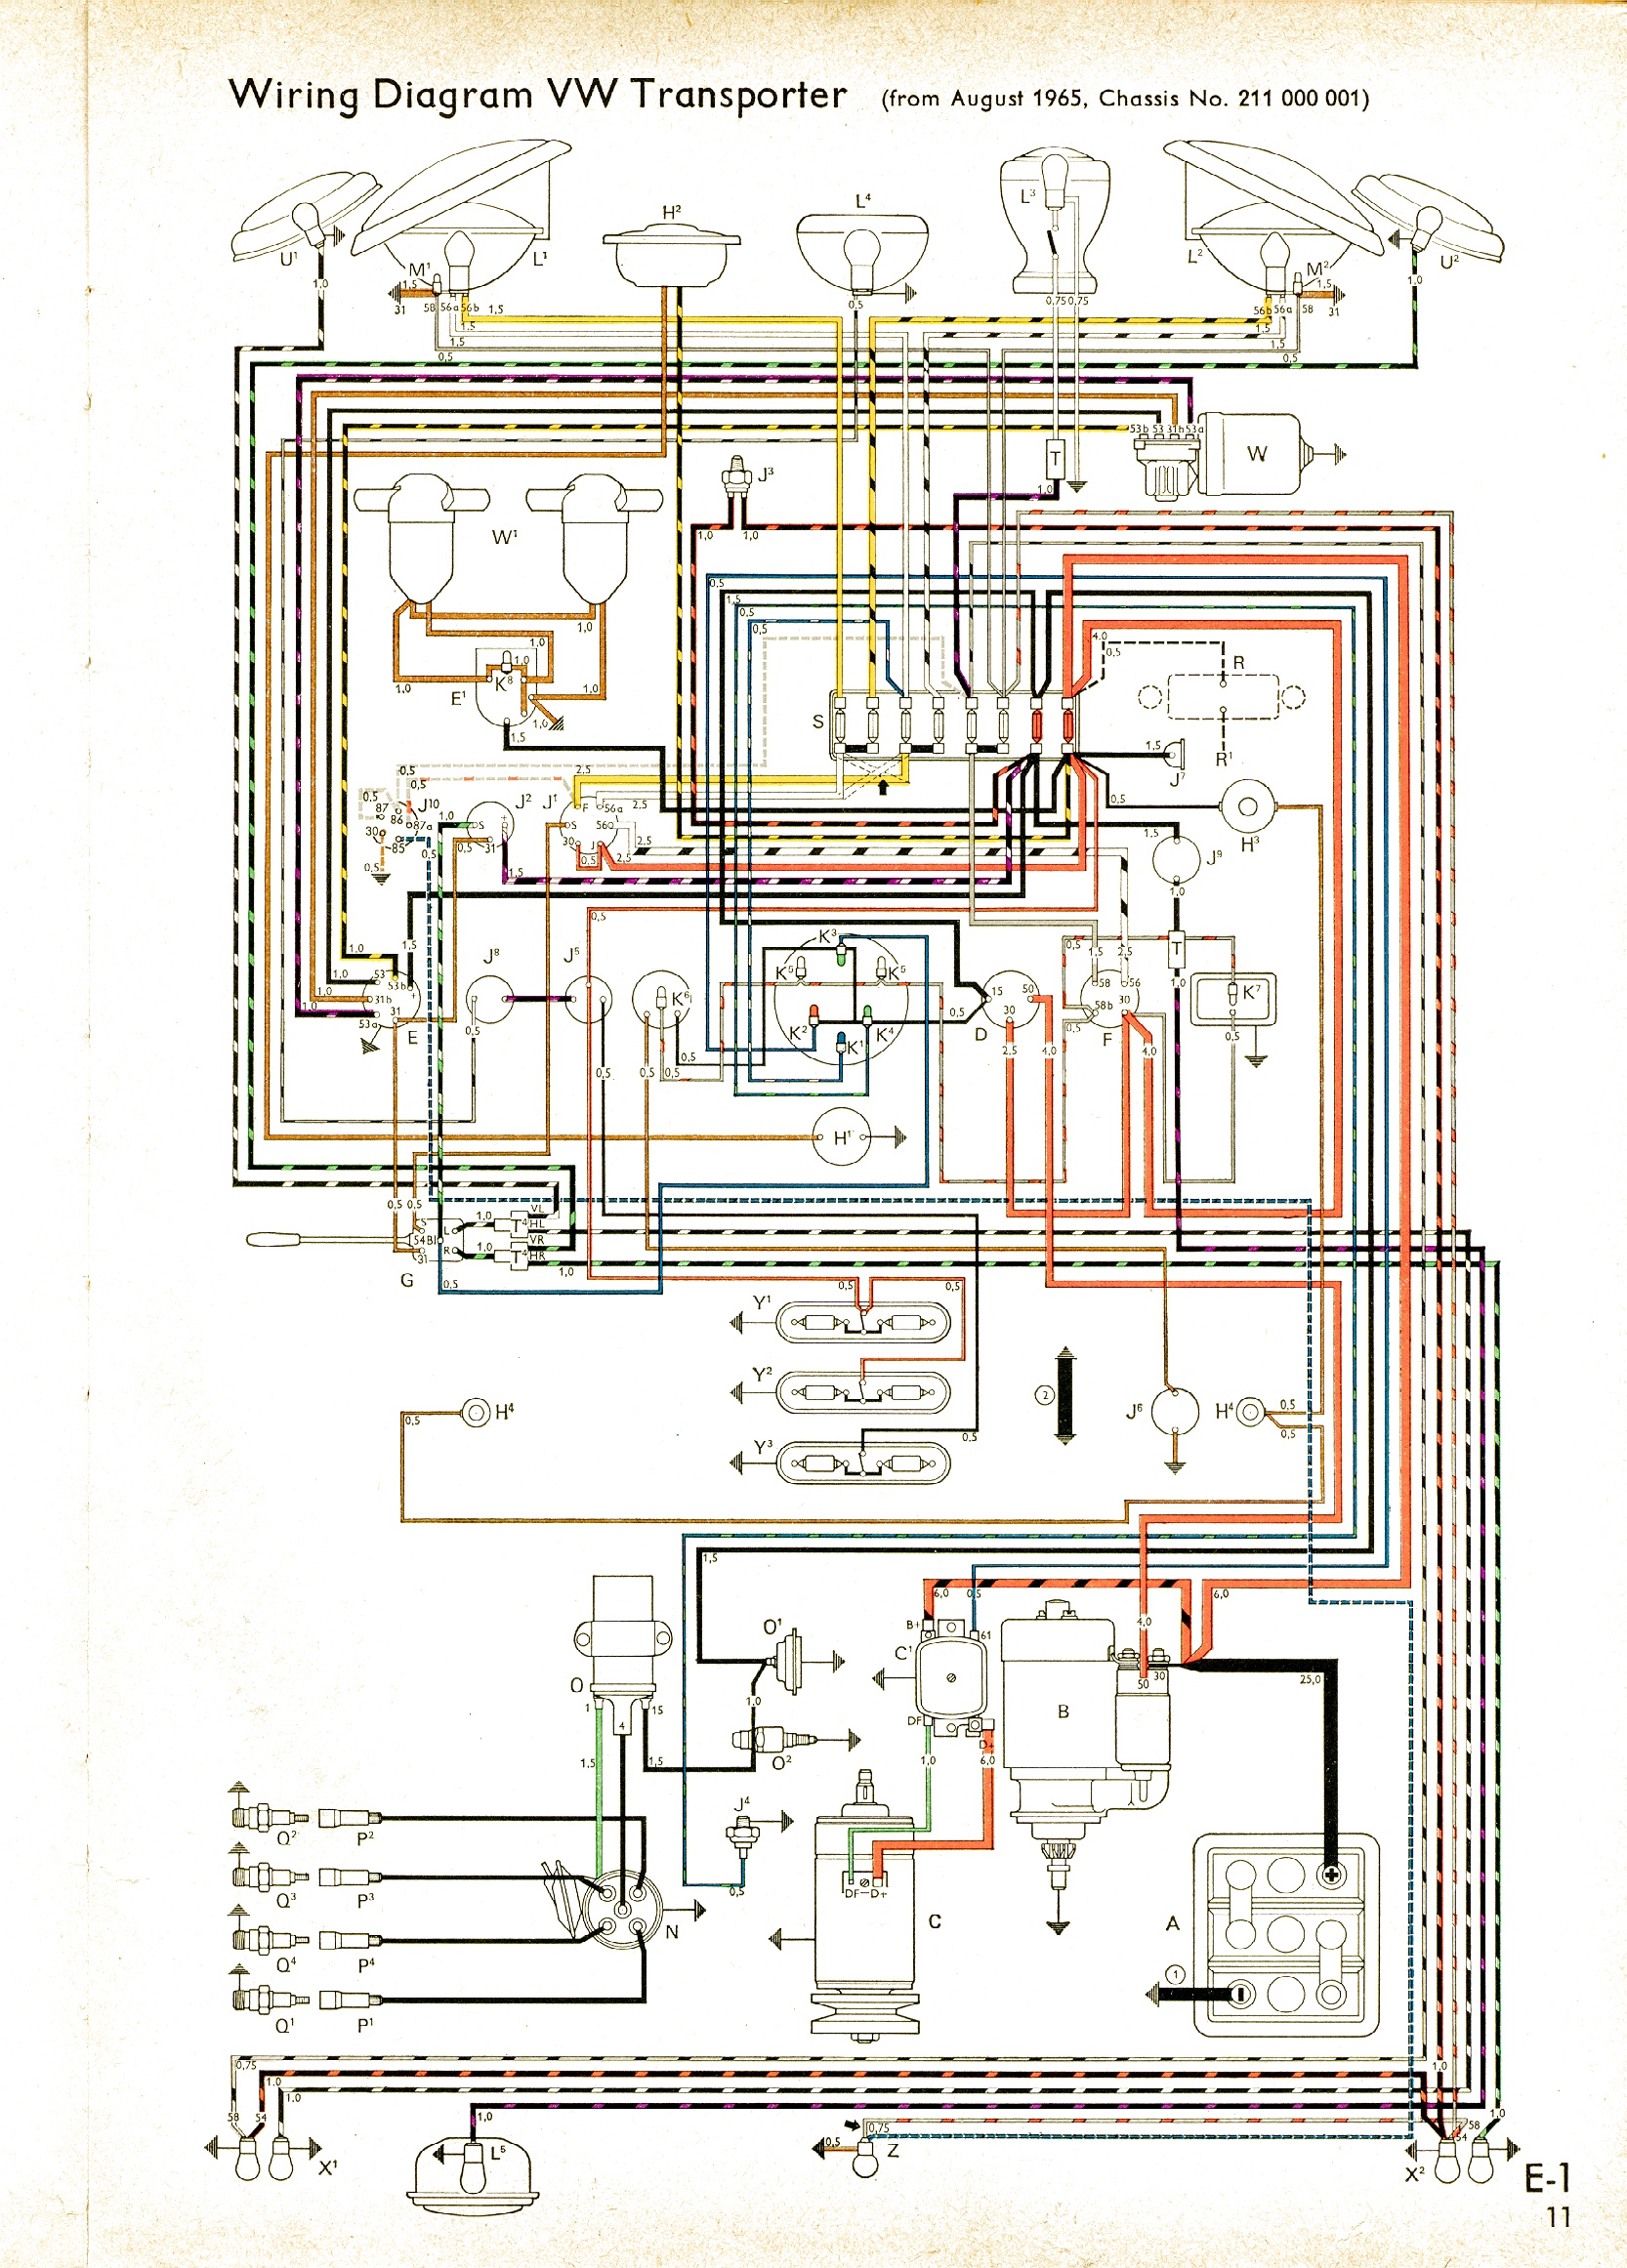 vintagebus com vw bus and other wiring diagrams rh vintagebus com VW Buggy Wiring-Diagram VW Beetle Wiring Diagram